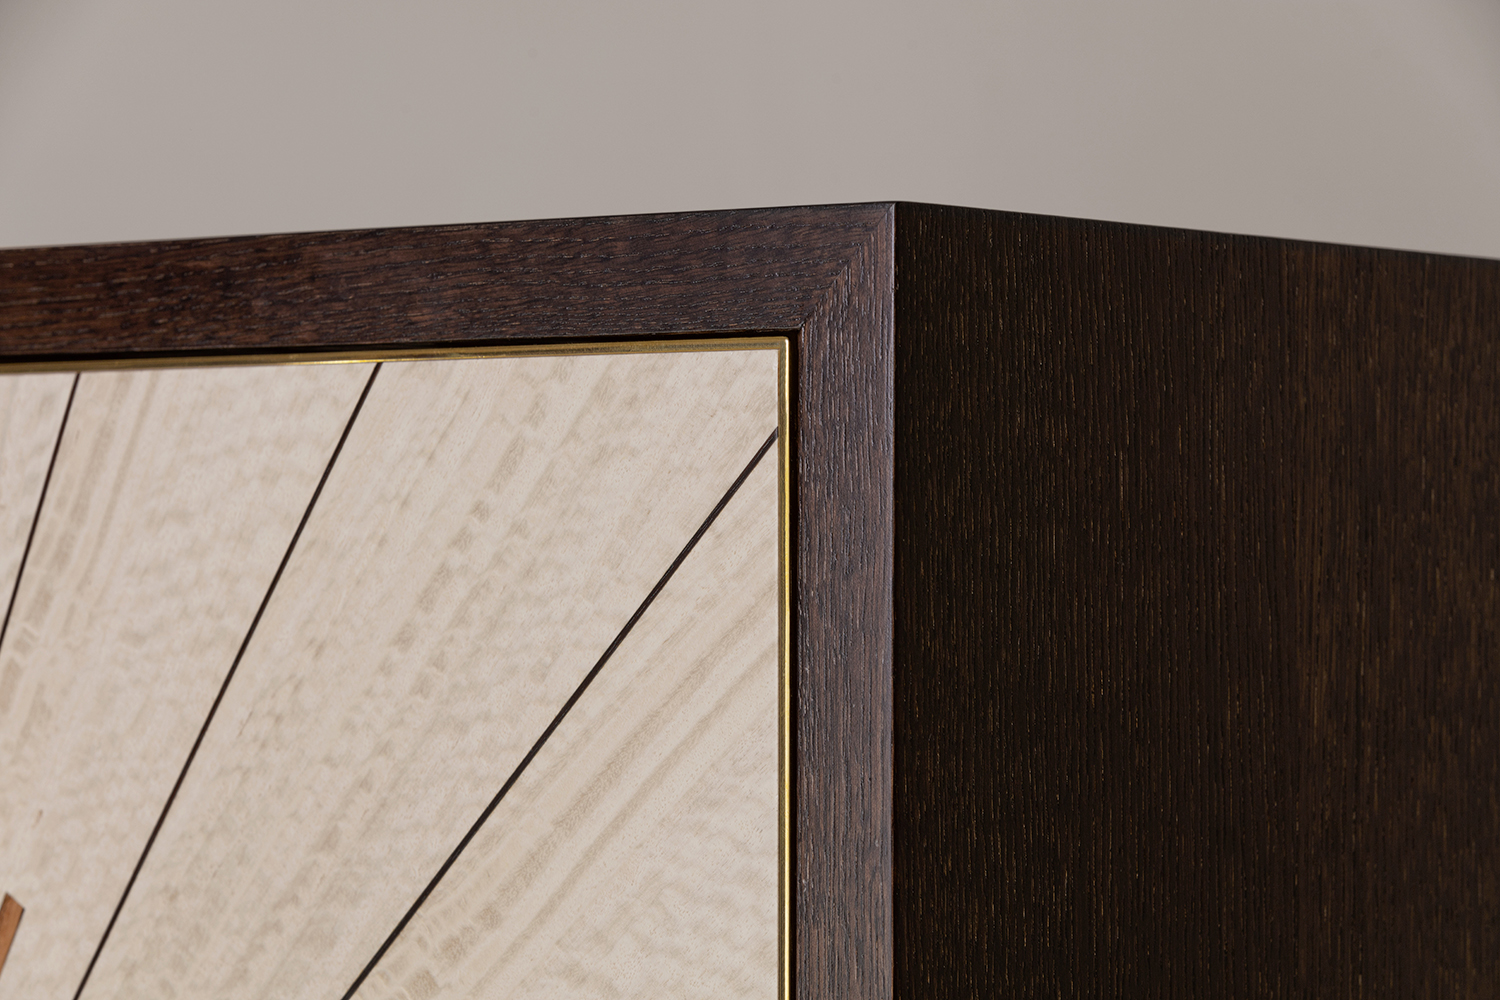 Luxury Marquetry Starburst Cabinet - Bespoke Furniture Hampshire, UK